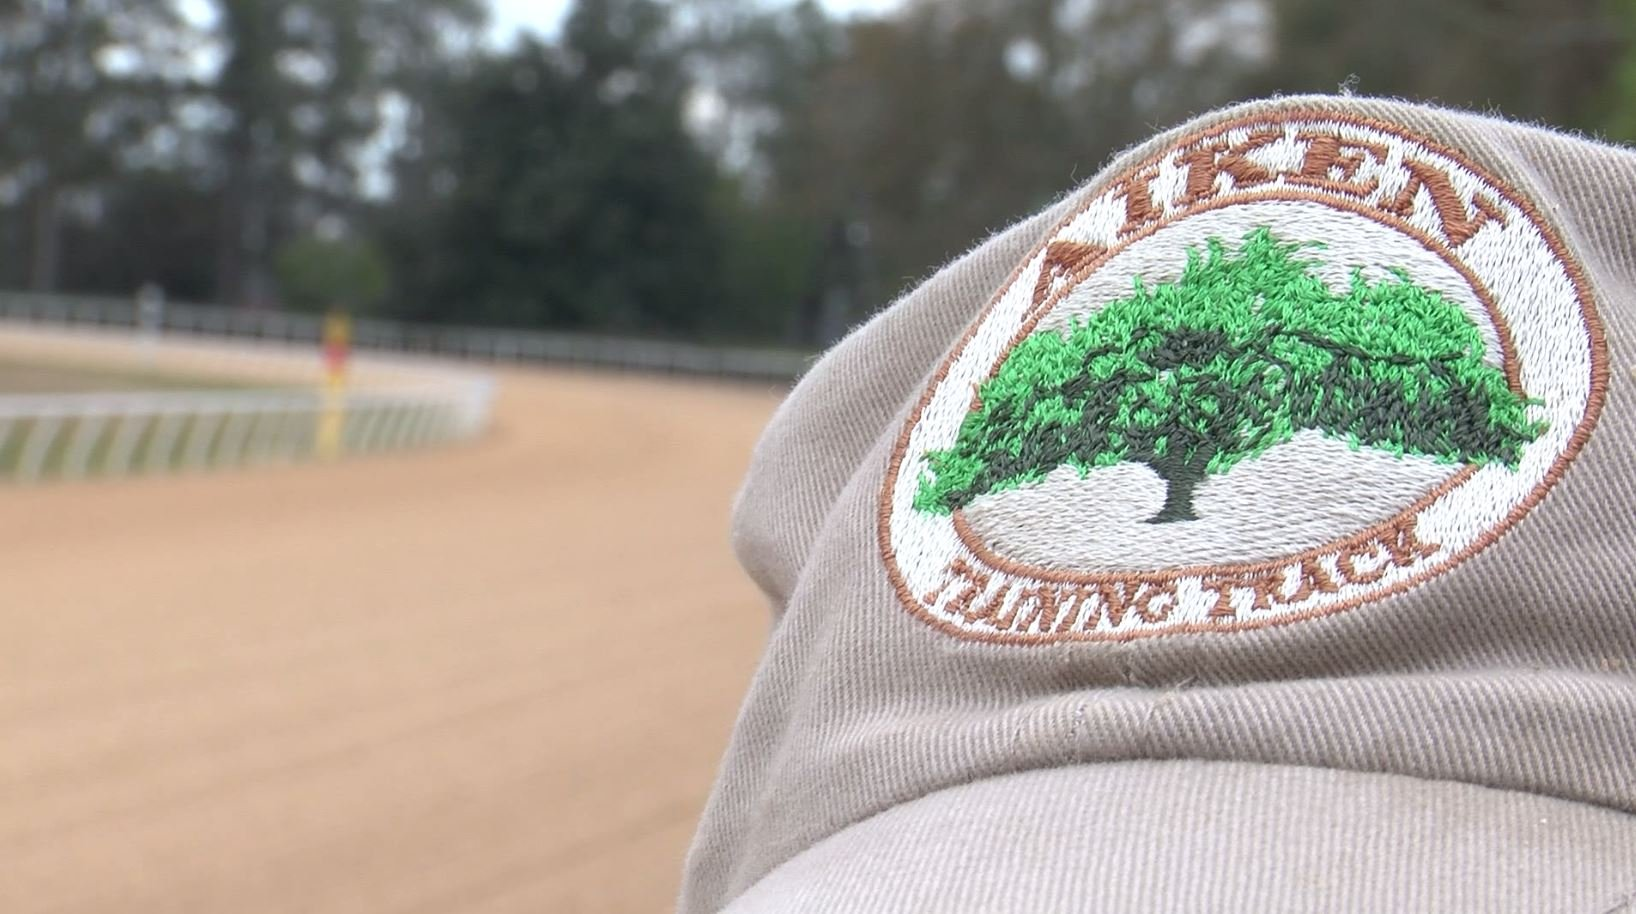 The 75th Aiken Trials is the staging ground for jumpstarting a horse's career; WFXG.